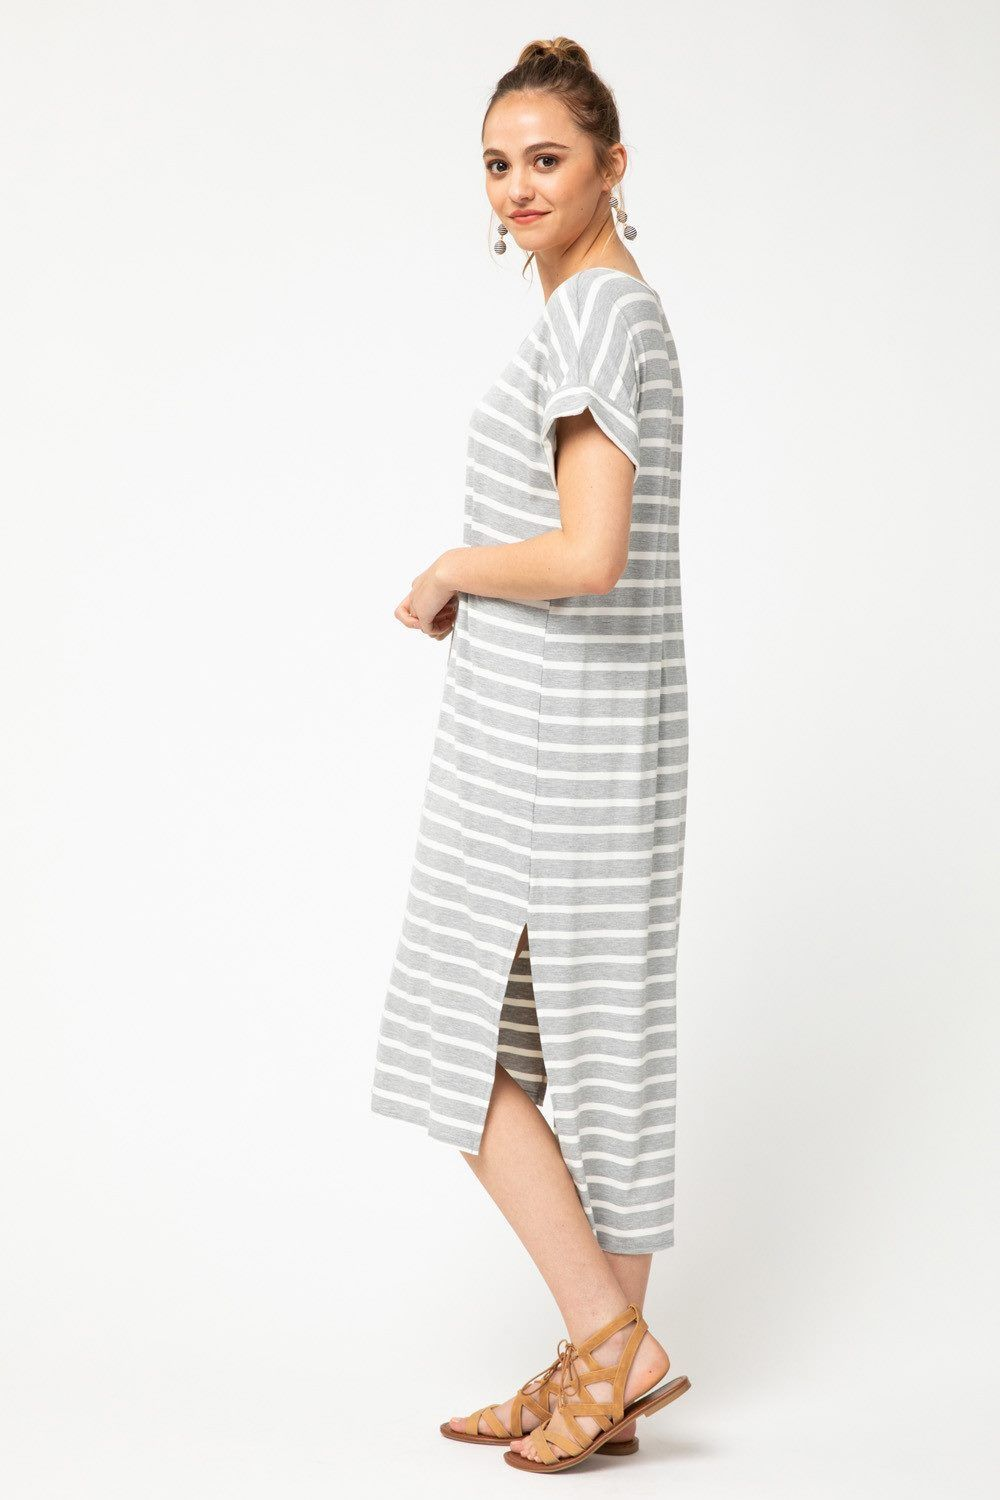 Striped Midi Dress Casual Summer Outfit Ideas Striped Midi Dress Midi Dress Casual Summer Fashion Dresses [ 1500 x 1000 Pixel ]